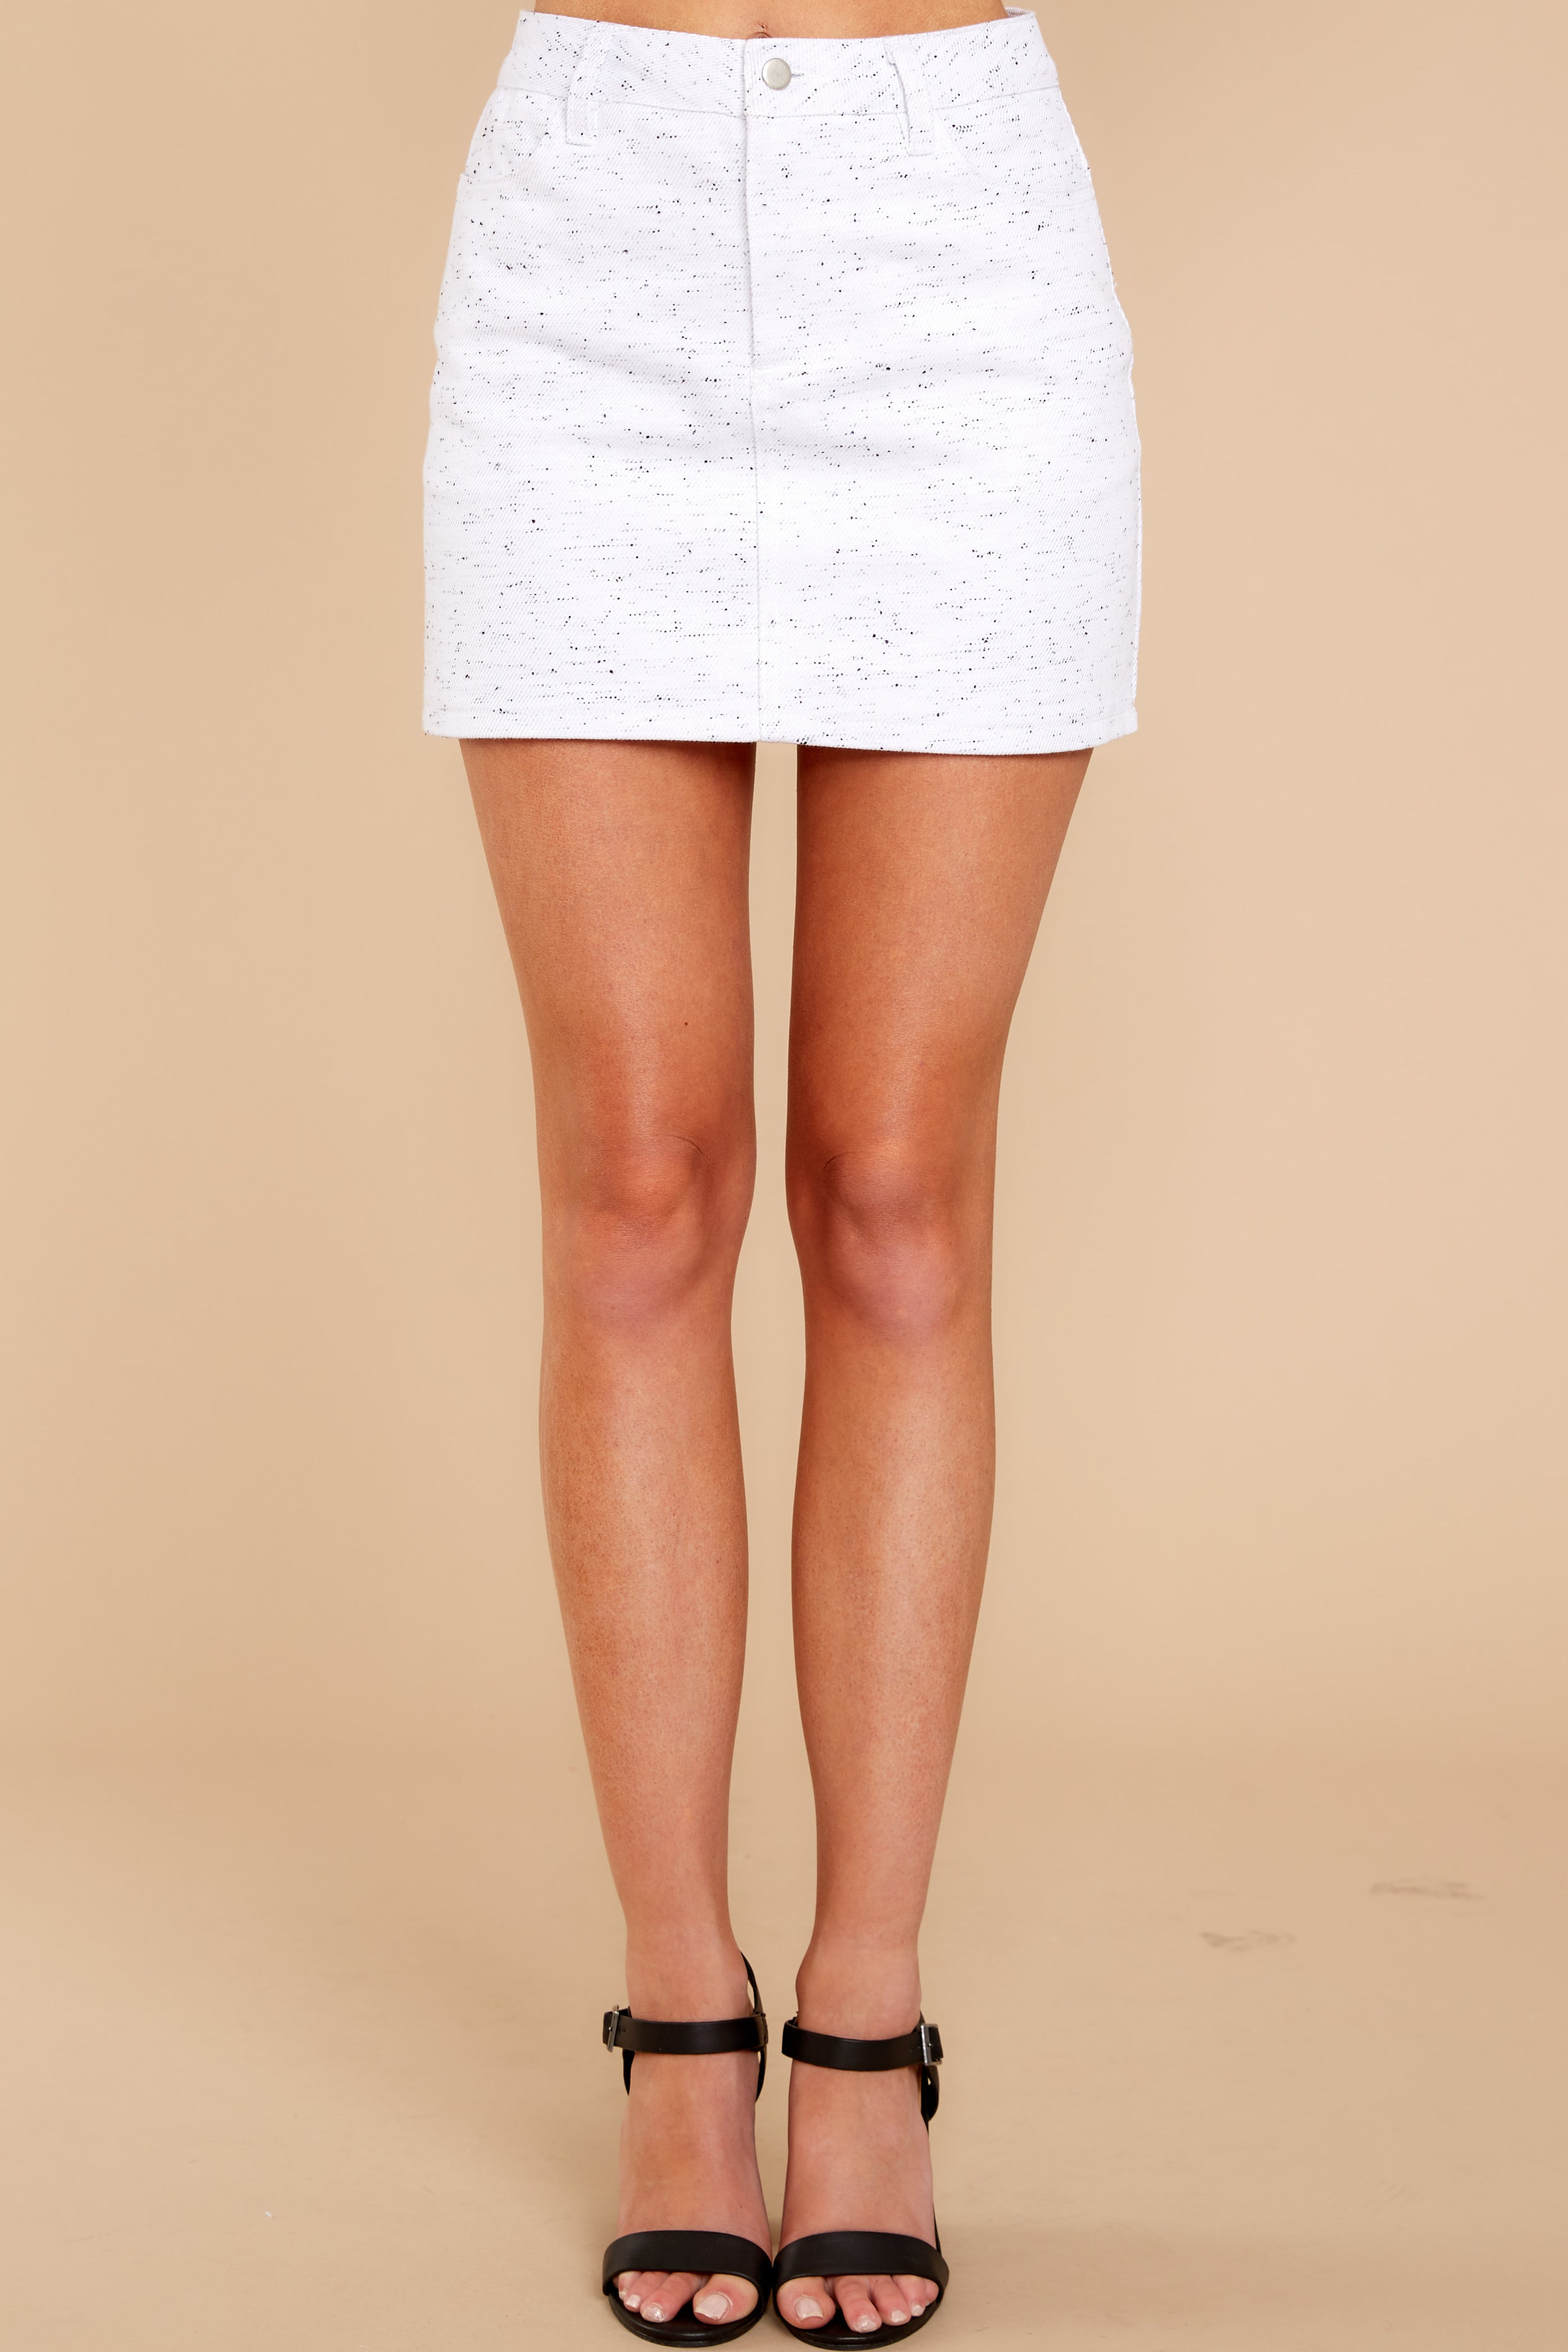 3 In Search Of You White Print Skirt at reddressboutique.com